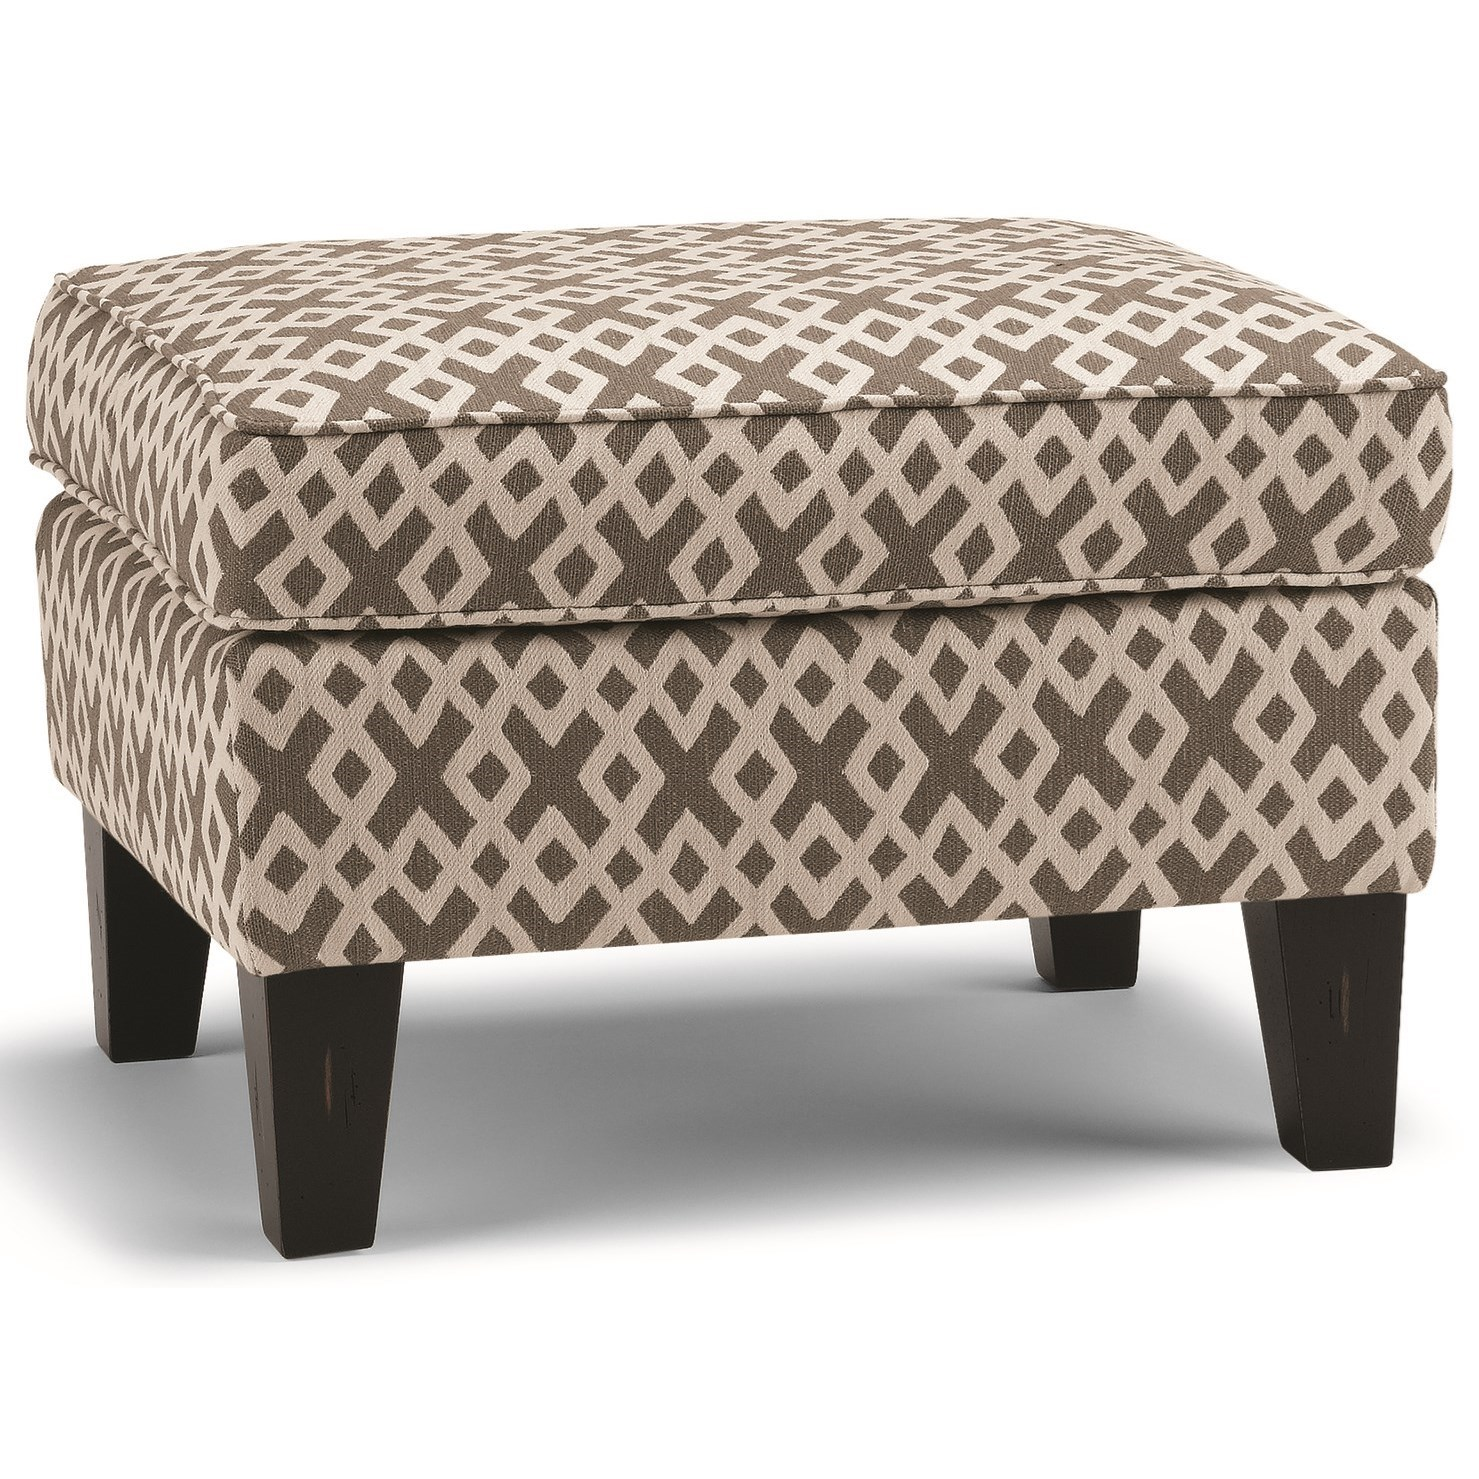 Club Chairs Ottoman by Best Home Furnishings at Lapeer Furniture & Mattress Center